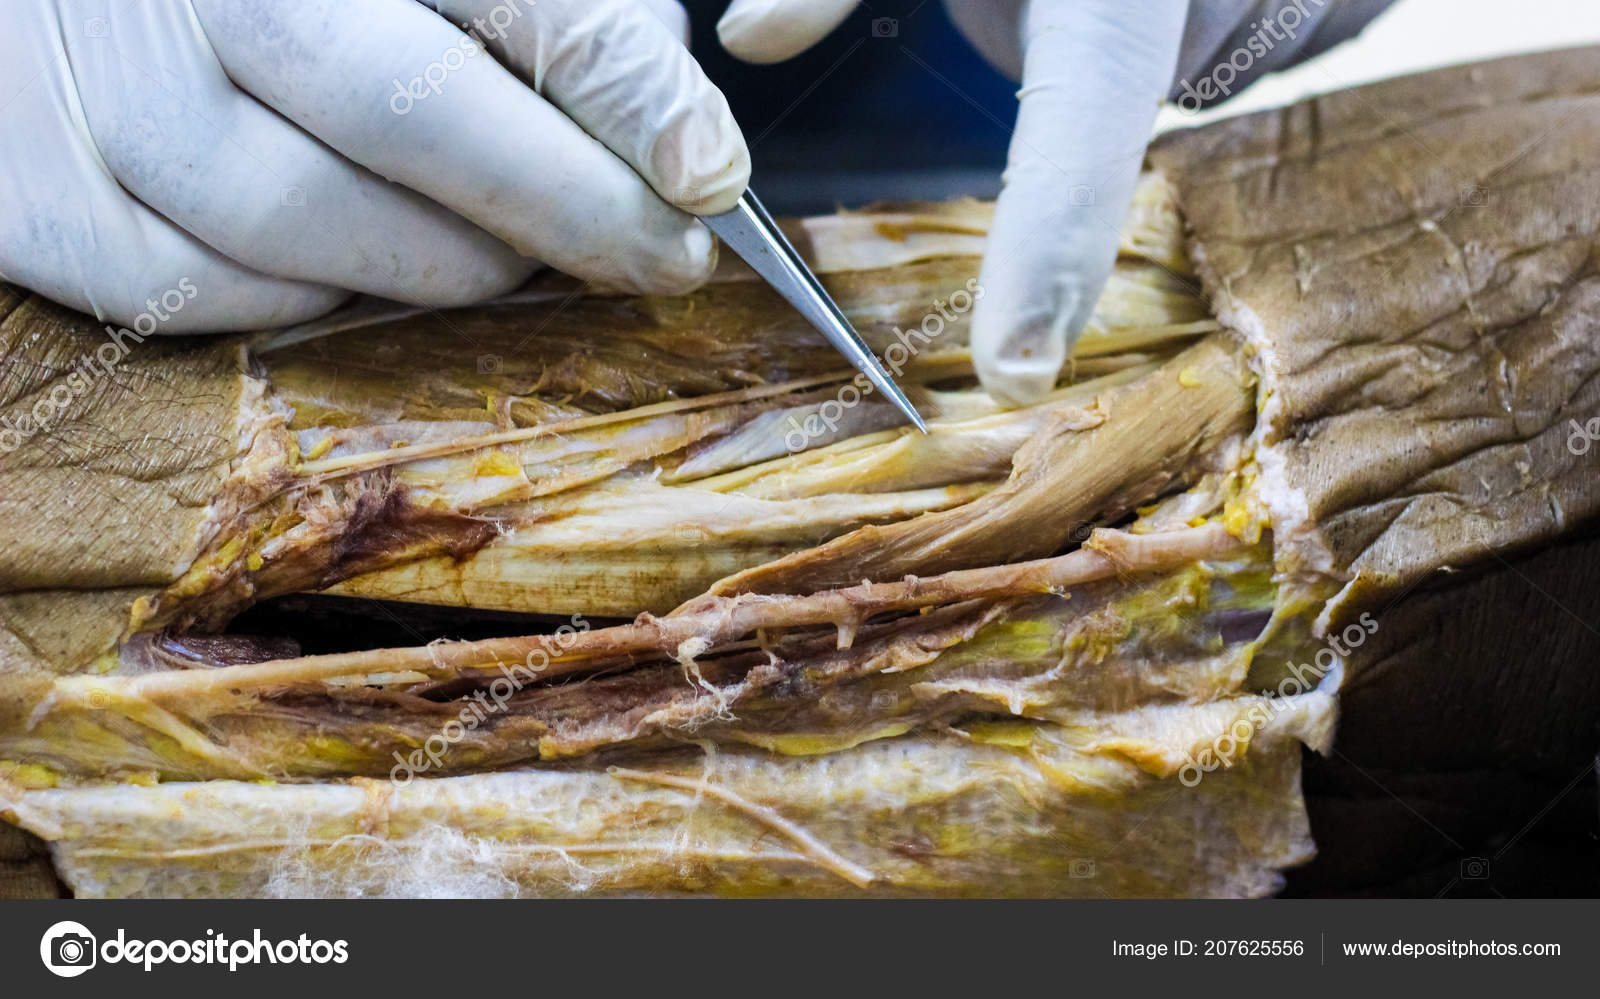 Anatomy Dissection Cadaver Showing Adductor Canal Using Scalpel ...